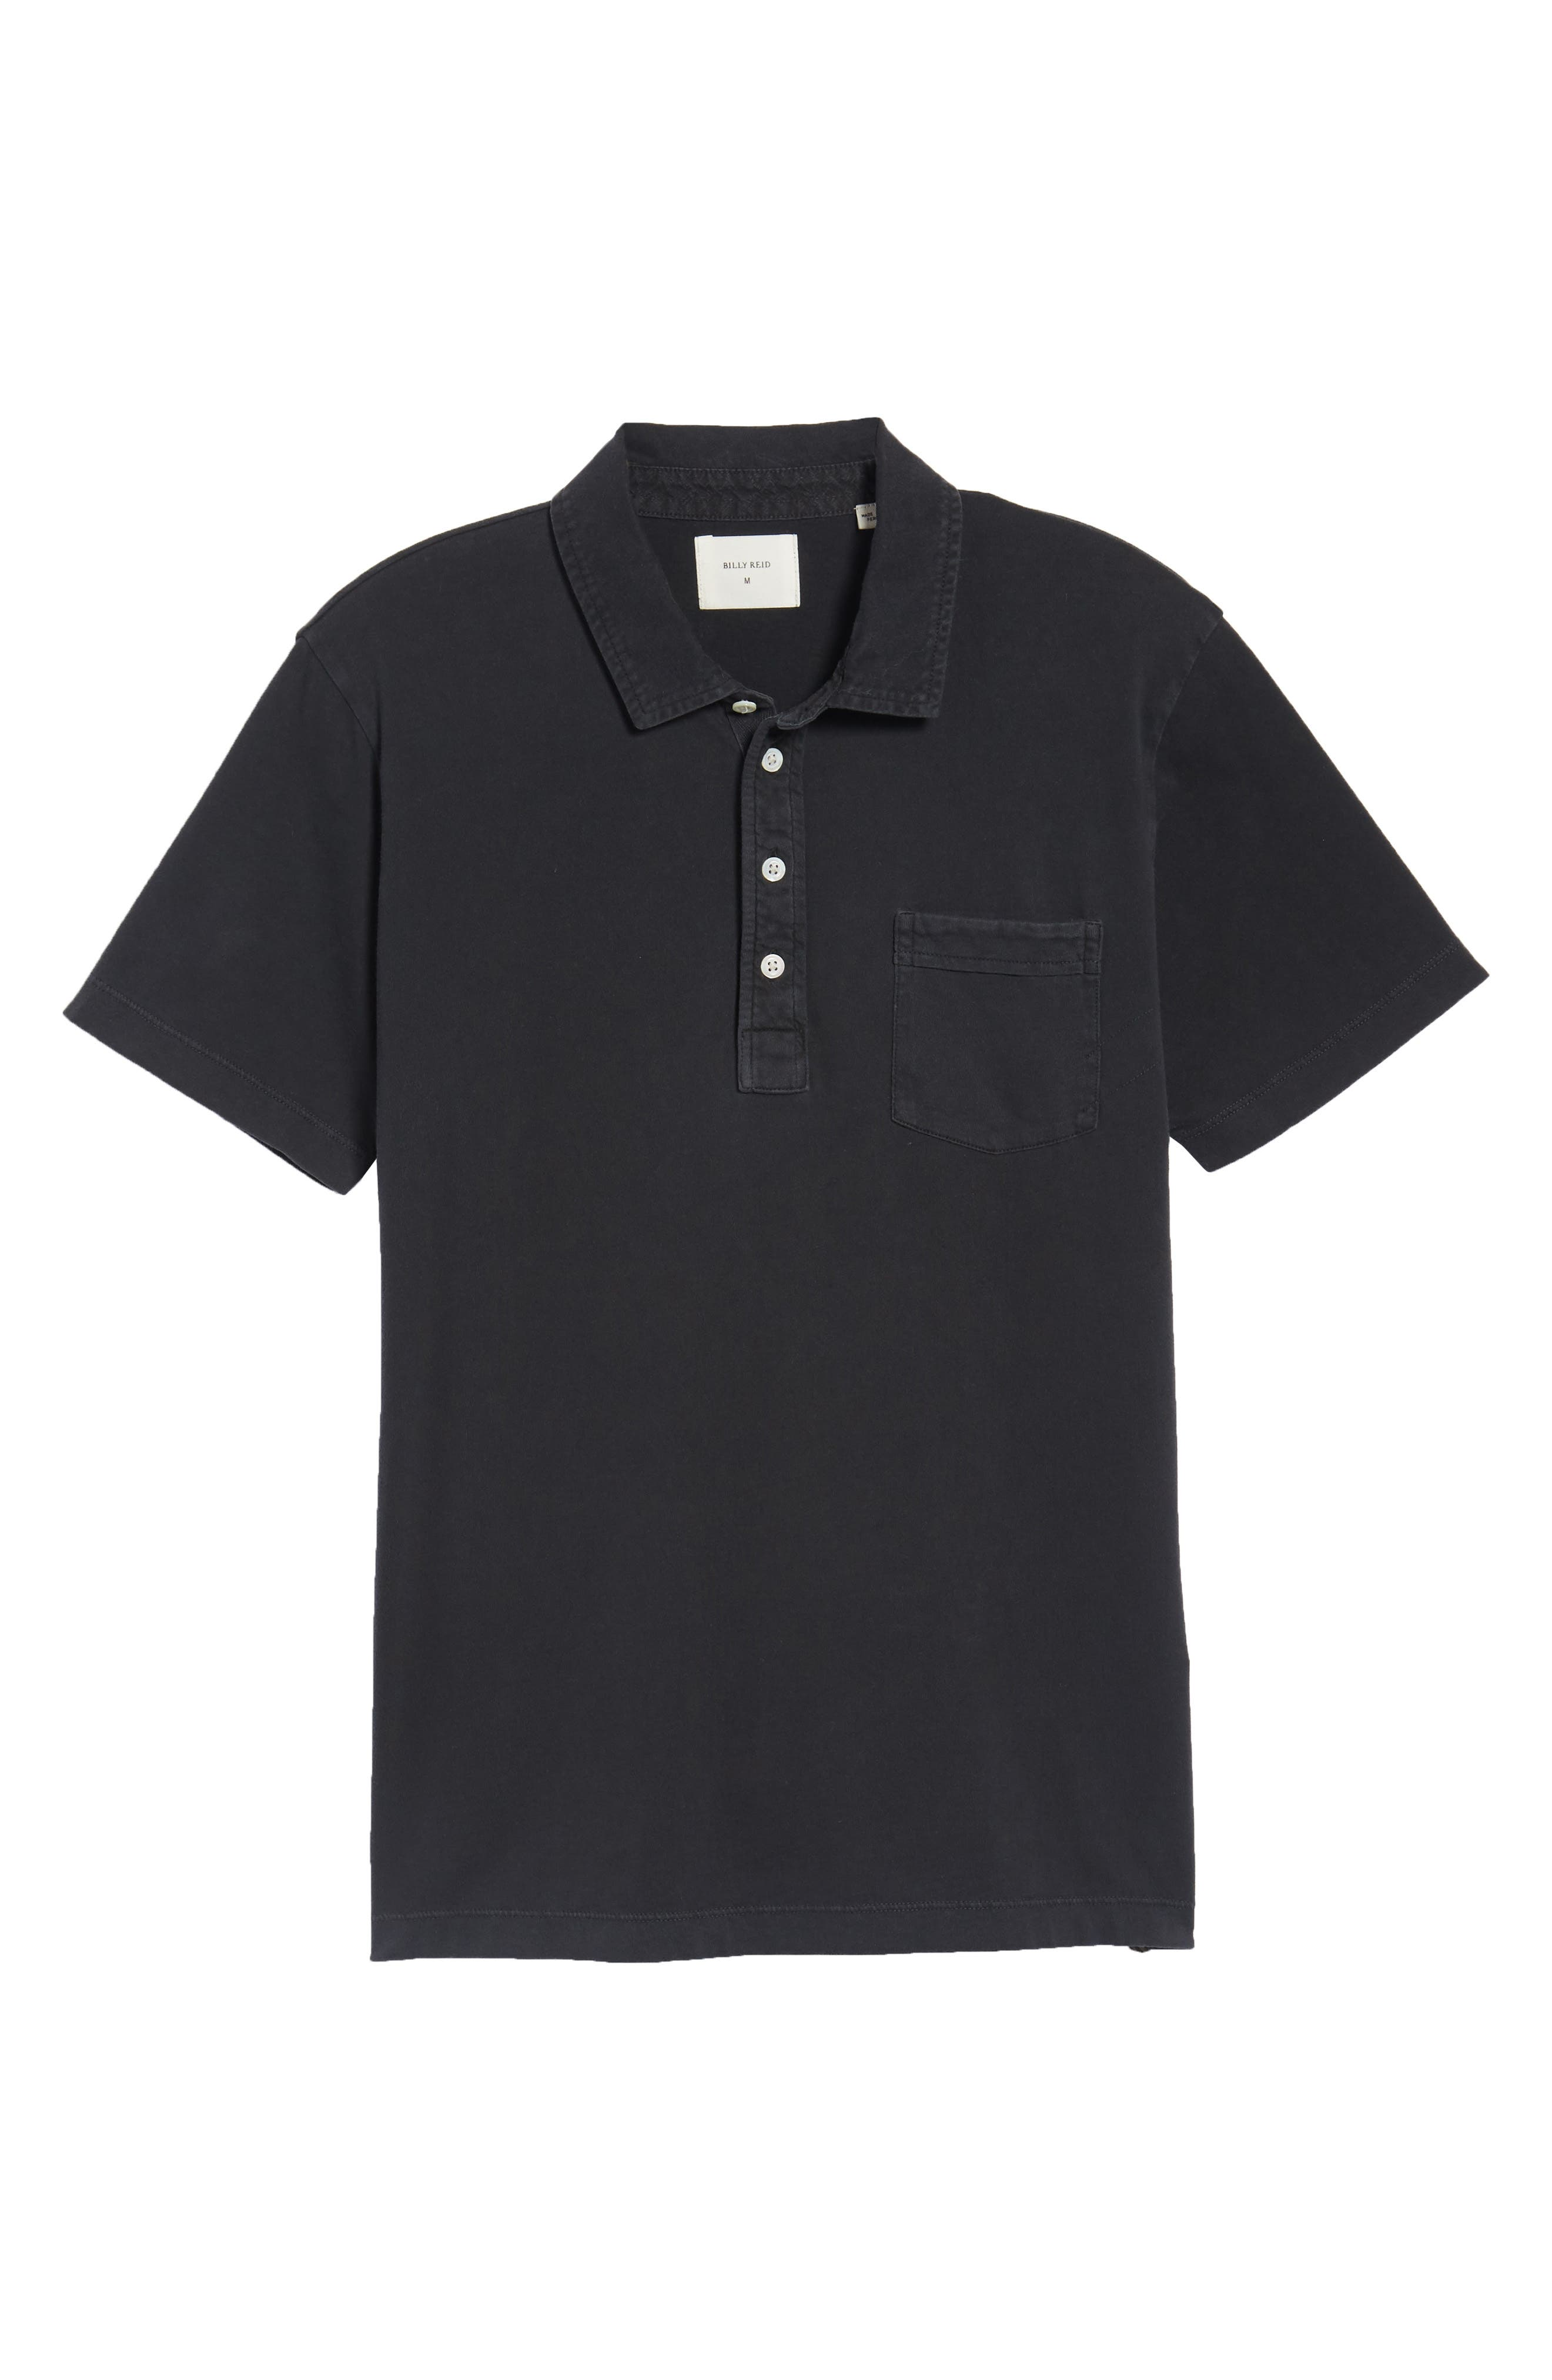 Pensacola Slim Fit Garment Dye Polo,                             Alternate thumbnail 6, color,                             BLACK